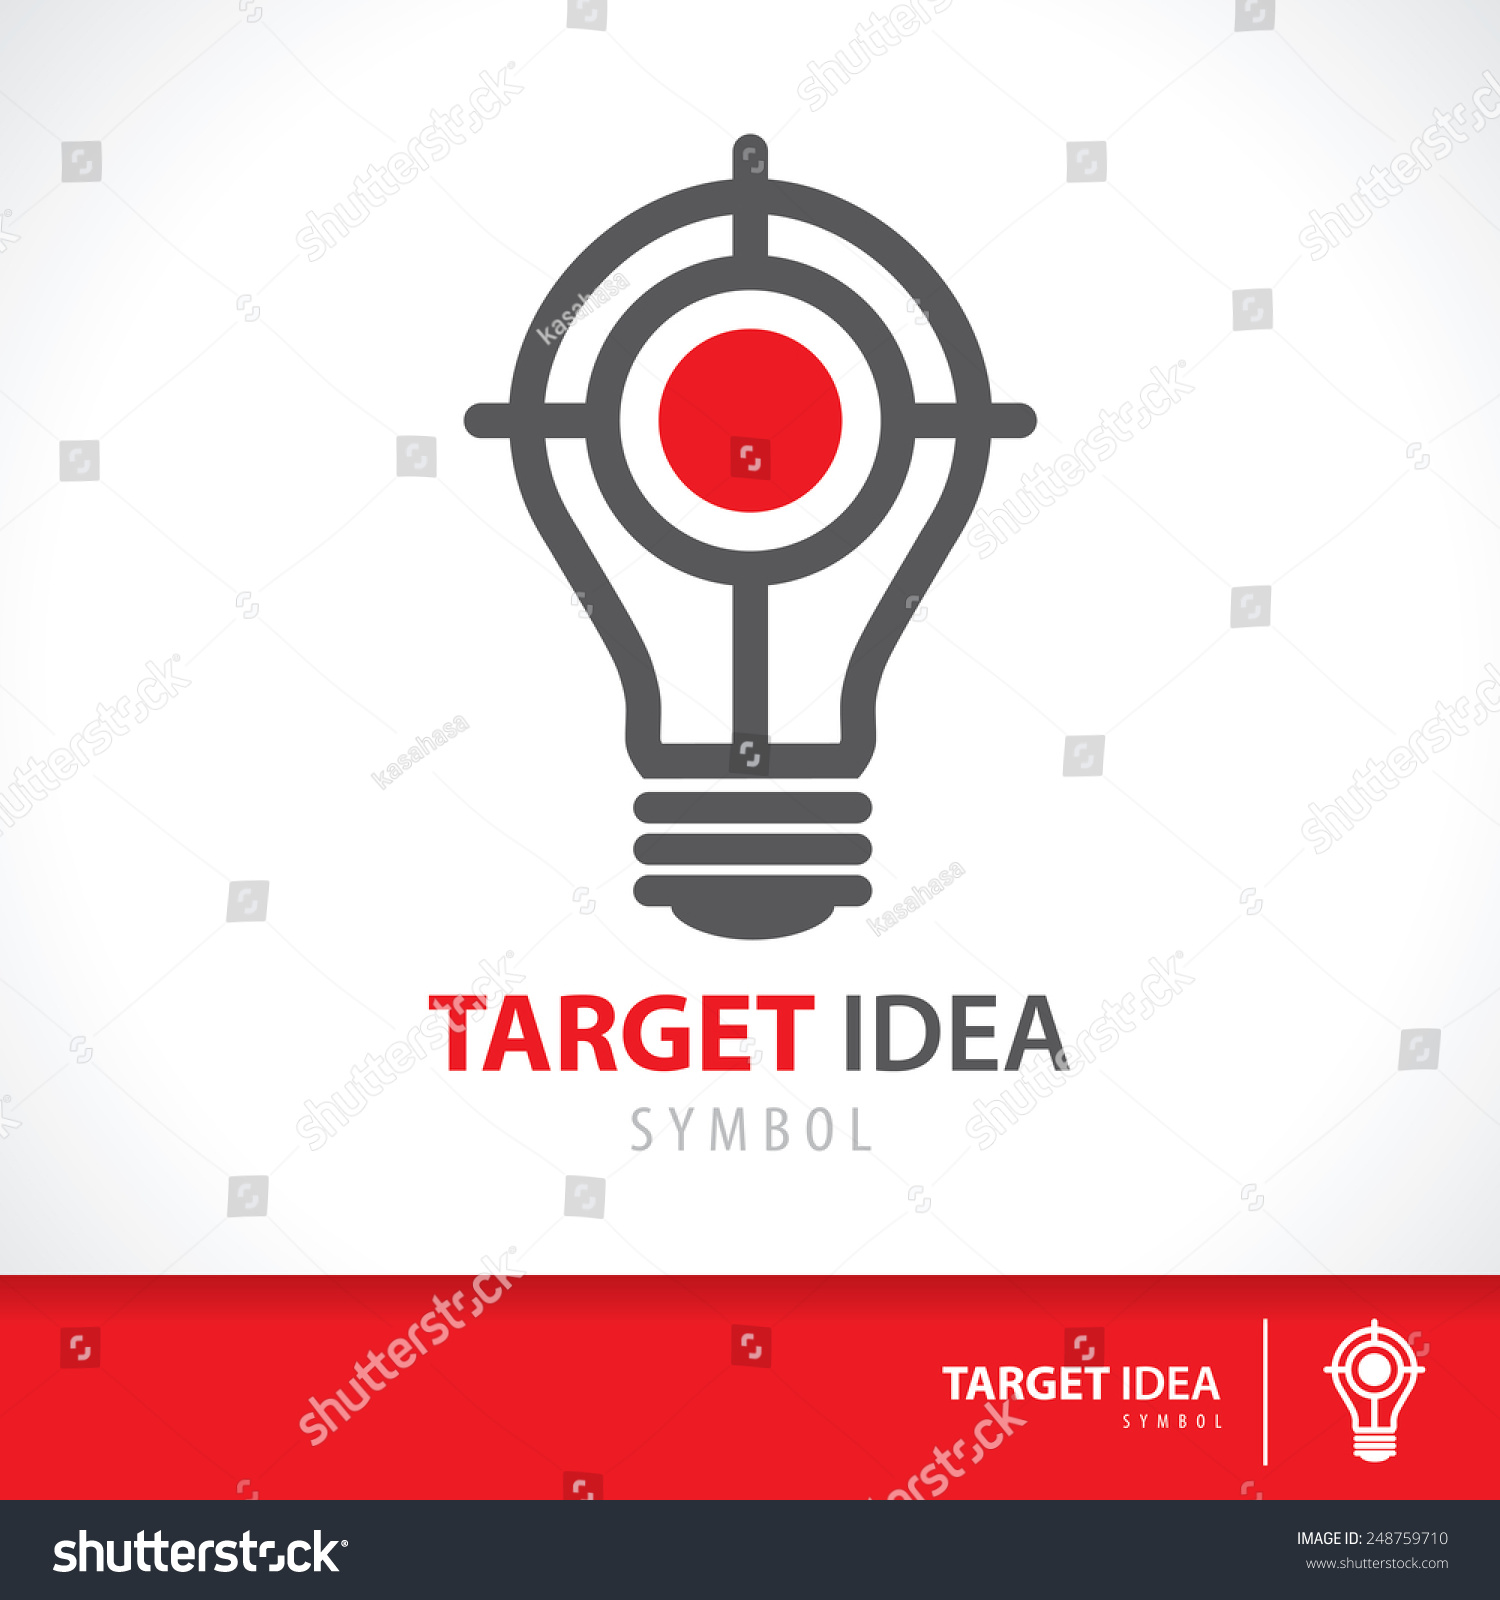 Home Ideas Design Inspiration Target: Target Idea Symbol Icon Hit Inspiration Stock Vector